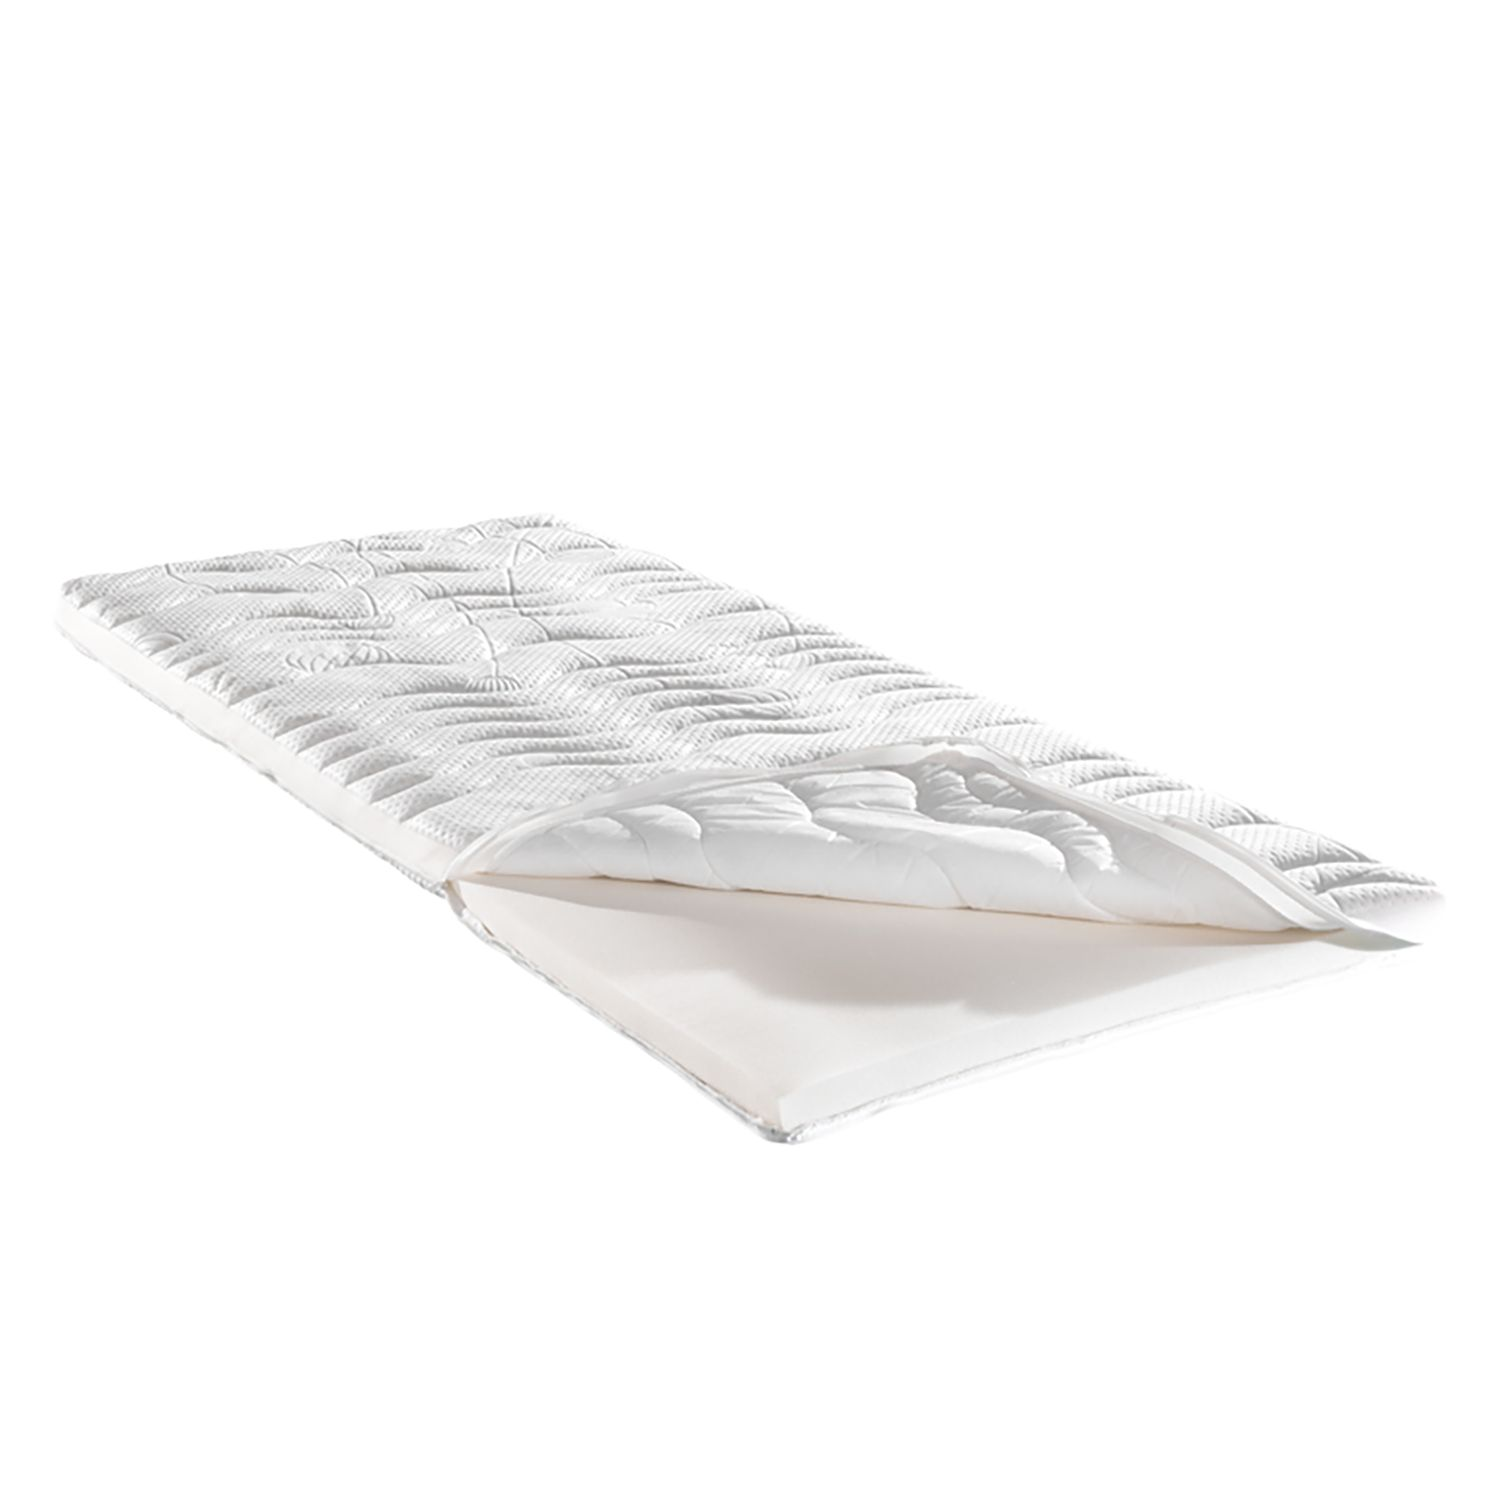 Surmatelas en mousse SoftSleep